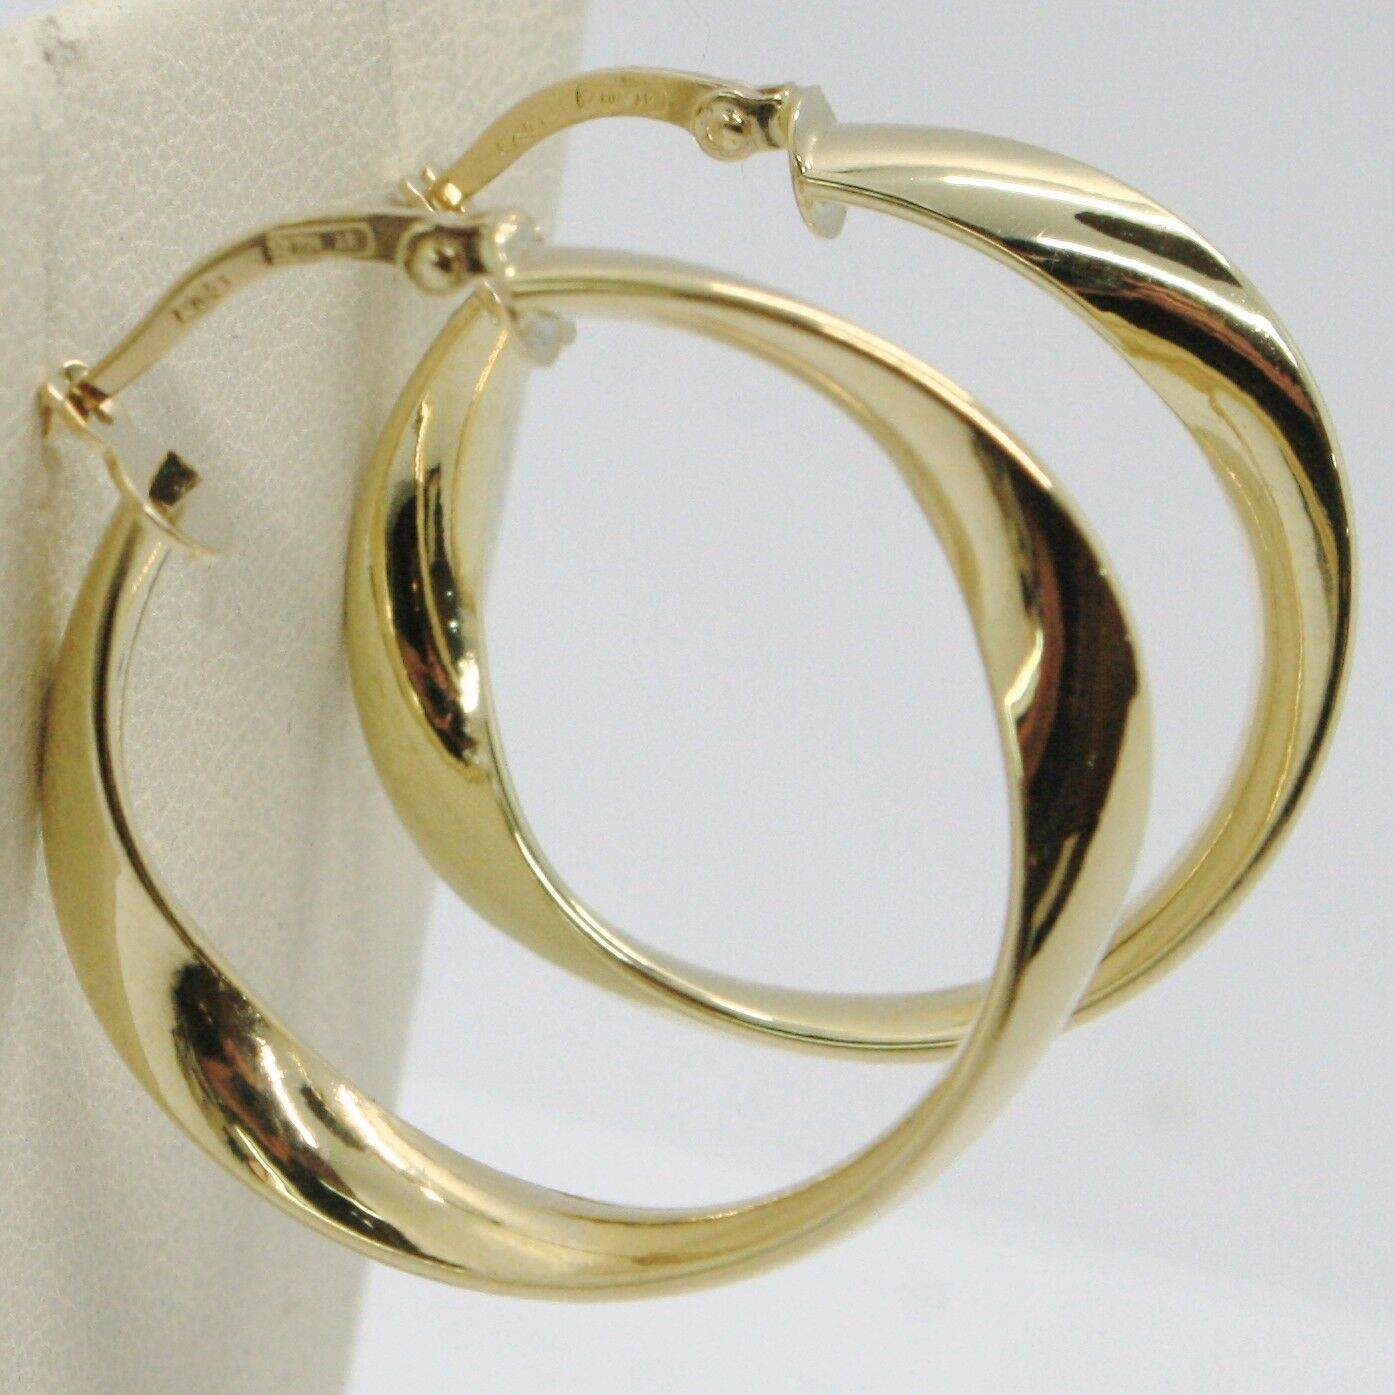 18K YELLOW GOLD PENDANT CIRCLE HOOPS ONDULATE TWISTED EARRINGS, MADE IN ITALY